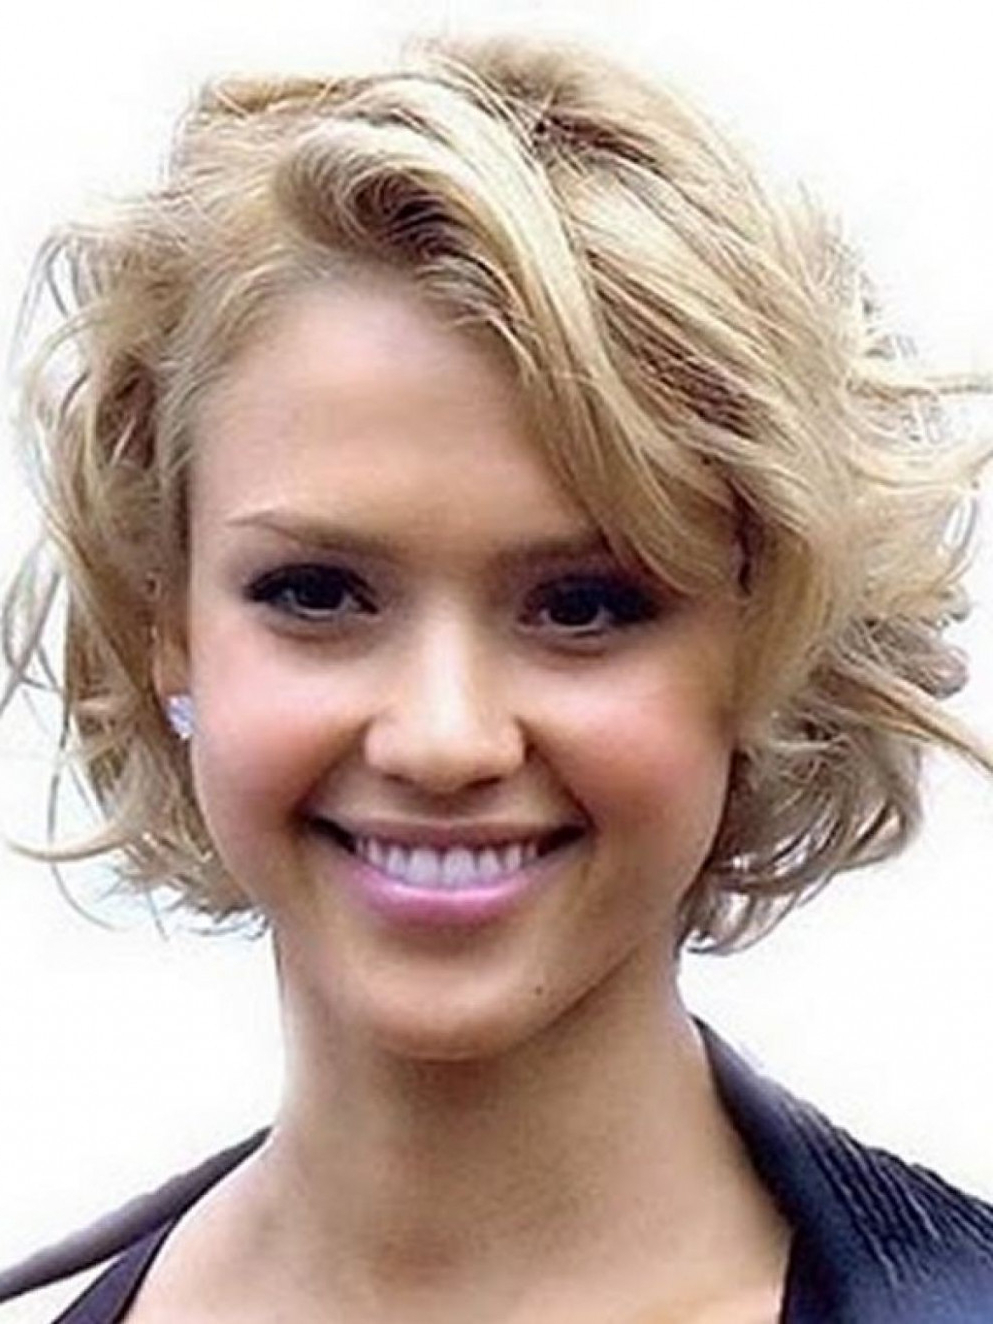 Short Hairstyles For Thick Wavy Hair Round Face Archives . (View 21 of 25)